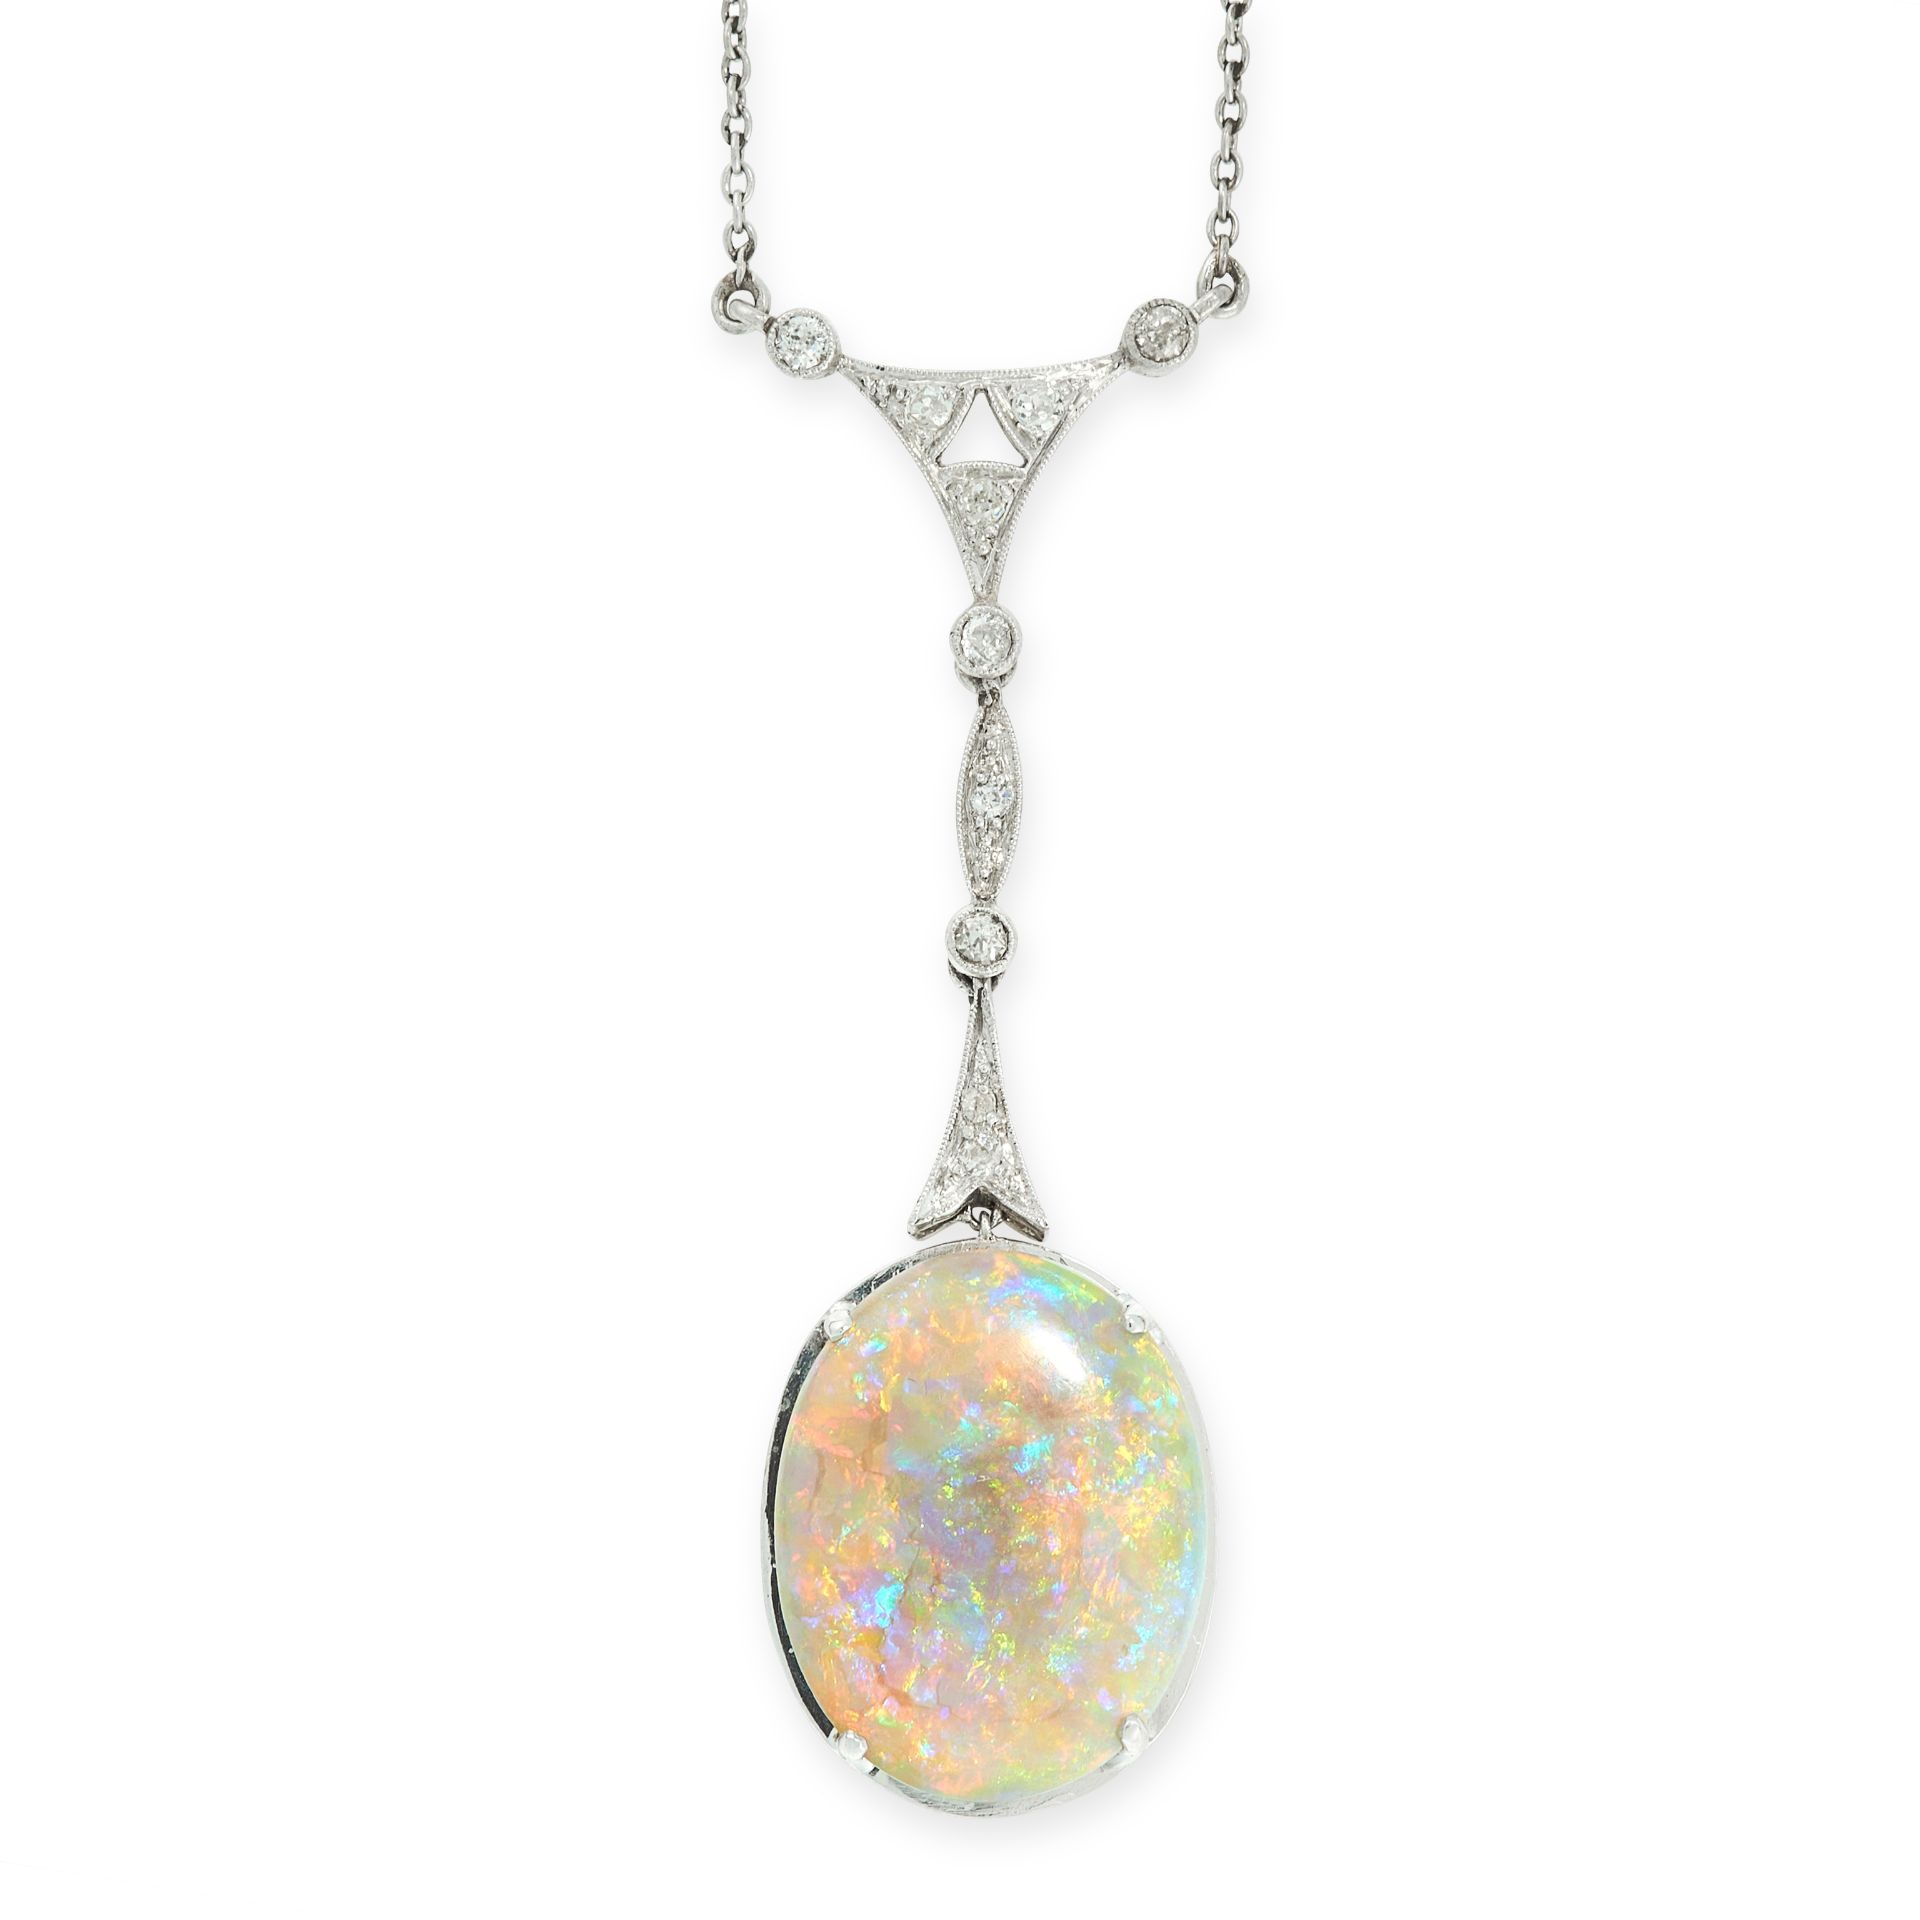 AN OPAL AND DIAMOND PENDANT NECKLACE, EARLY 20TH CENTURY set with an oval cabochon opal of 7.12